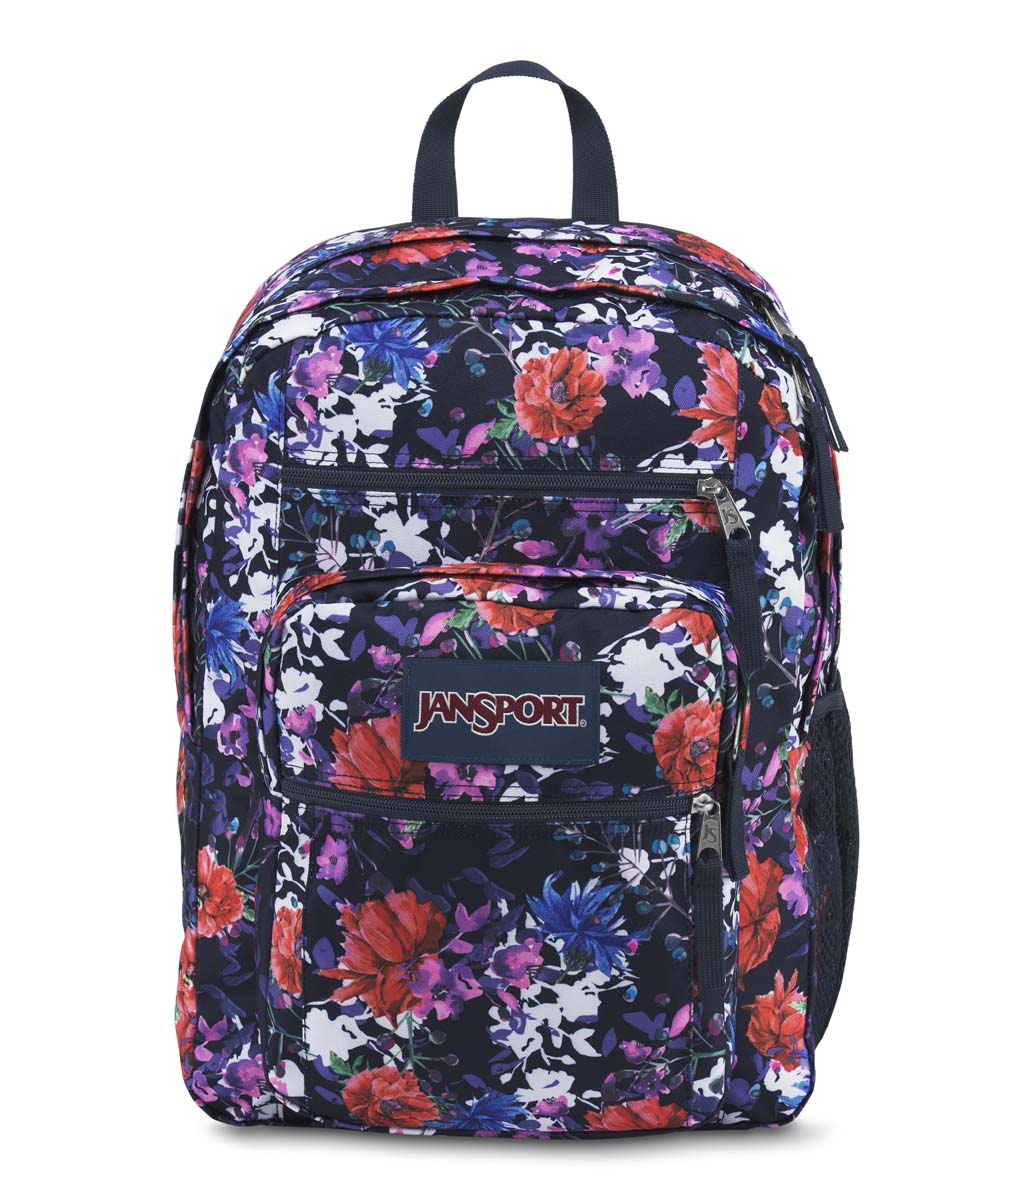 Jansport Big Student Backpack - Morning Bloom